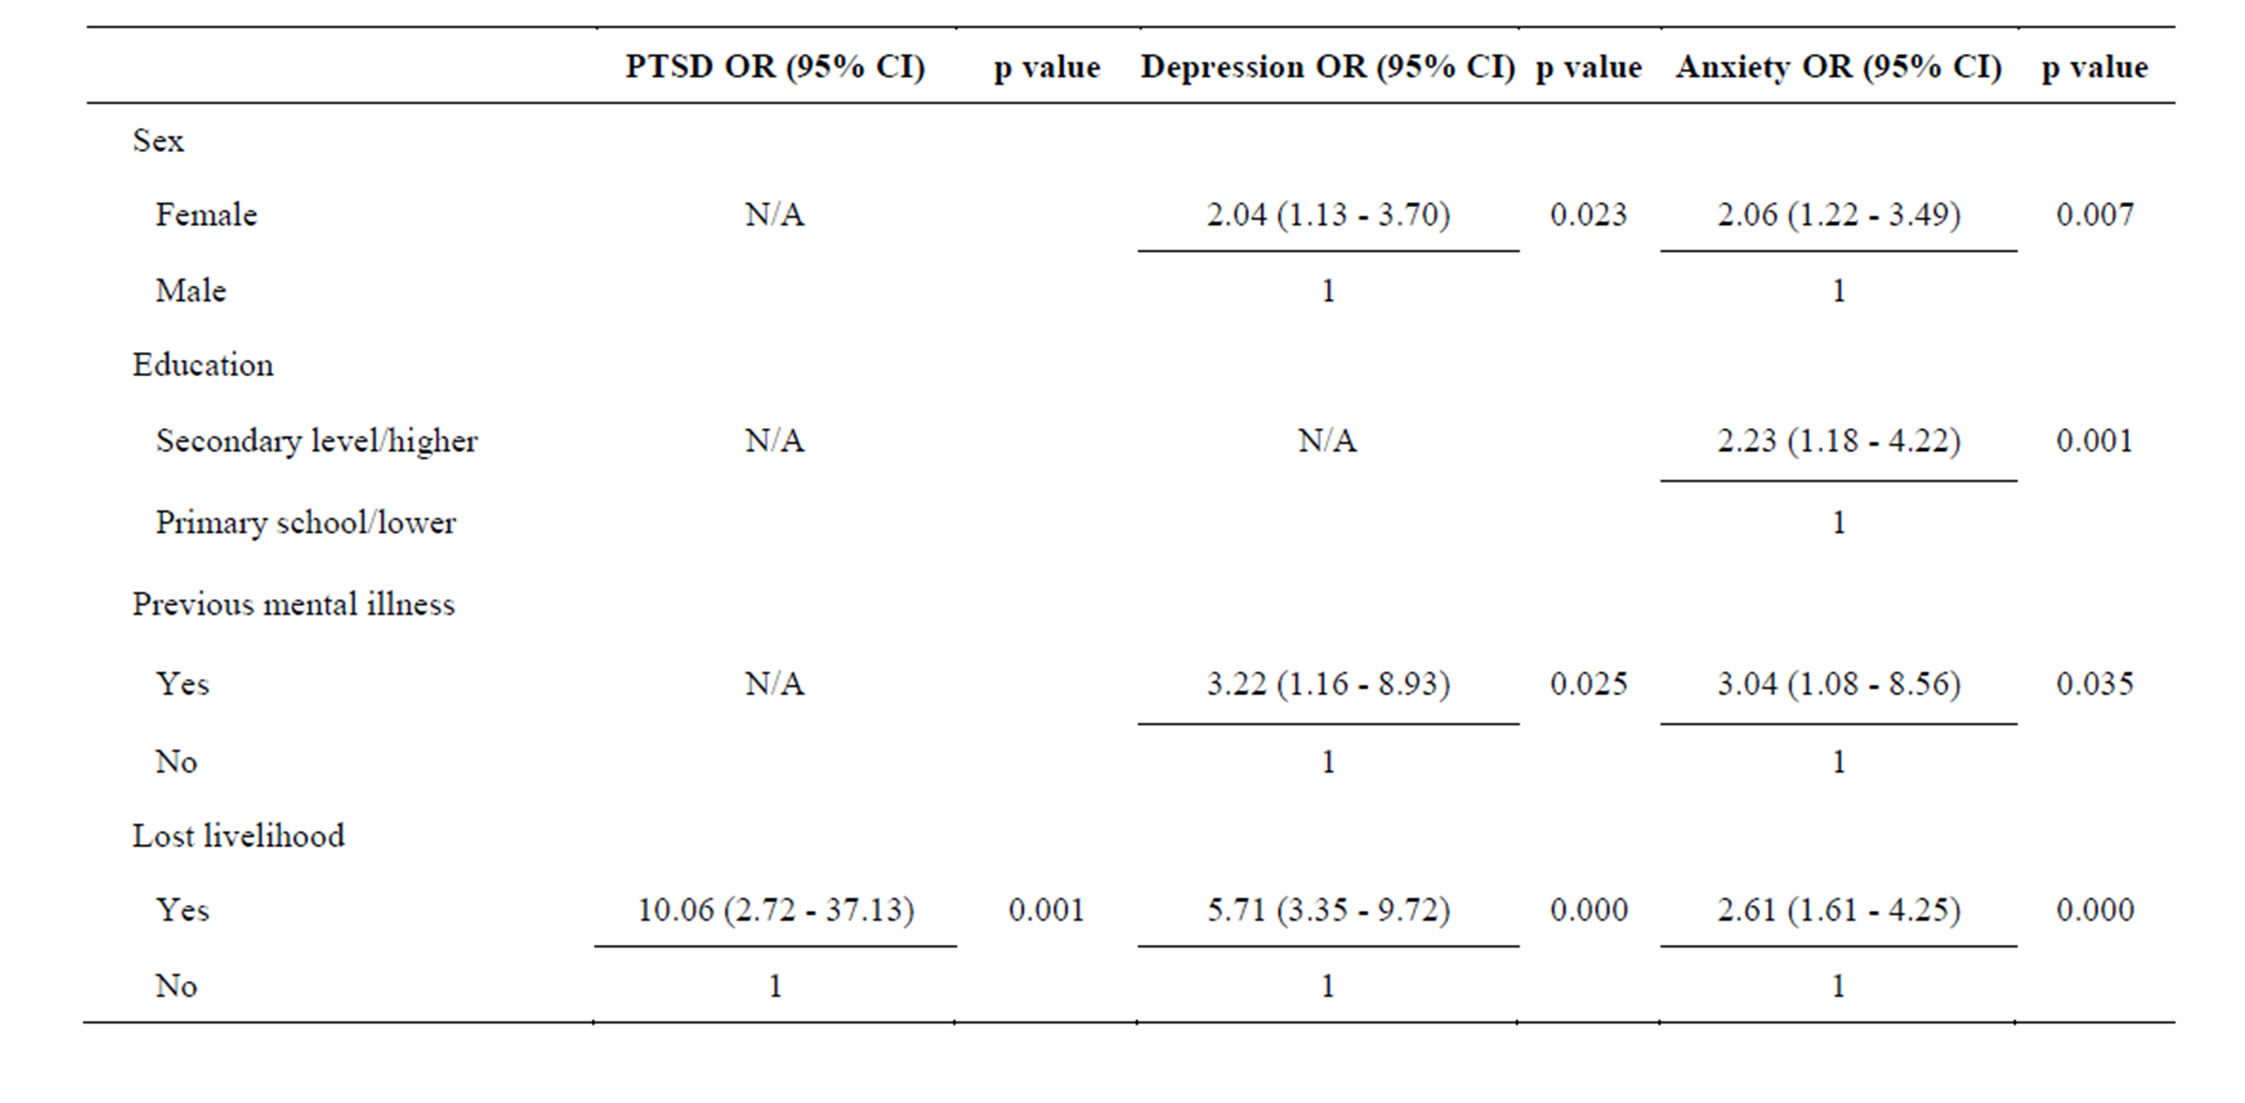 post traumatic stress disorder research paper outline Post-traumatic stress disorder  term paper, or research paper based on the research, post-traumatic disorder usually occurs following the experience or.